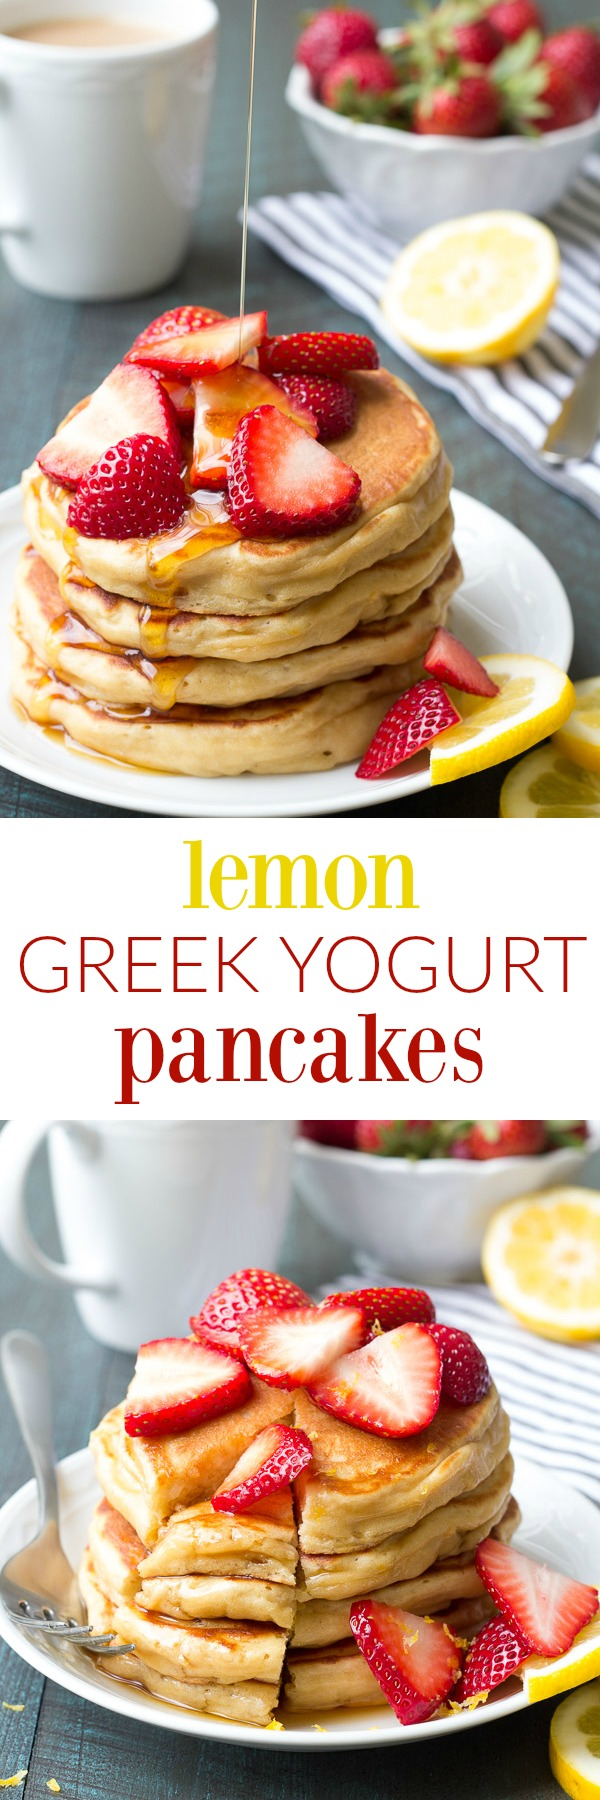 Lemon Pancakes With Yogurt + Berries Recipe — Dishmaps